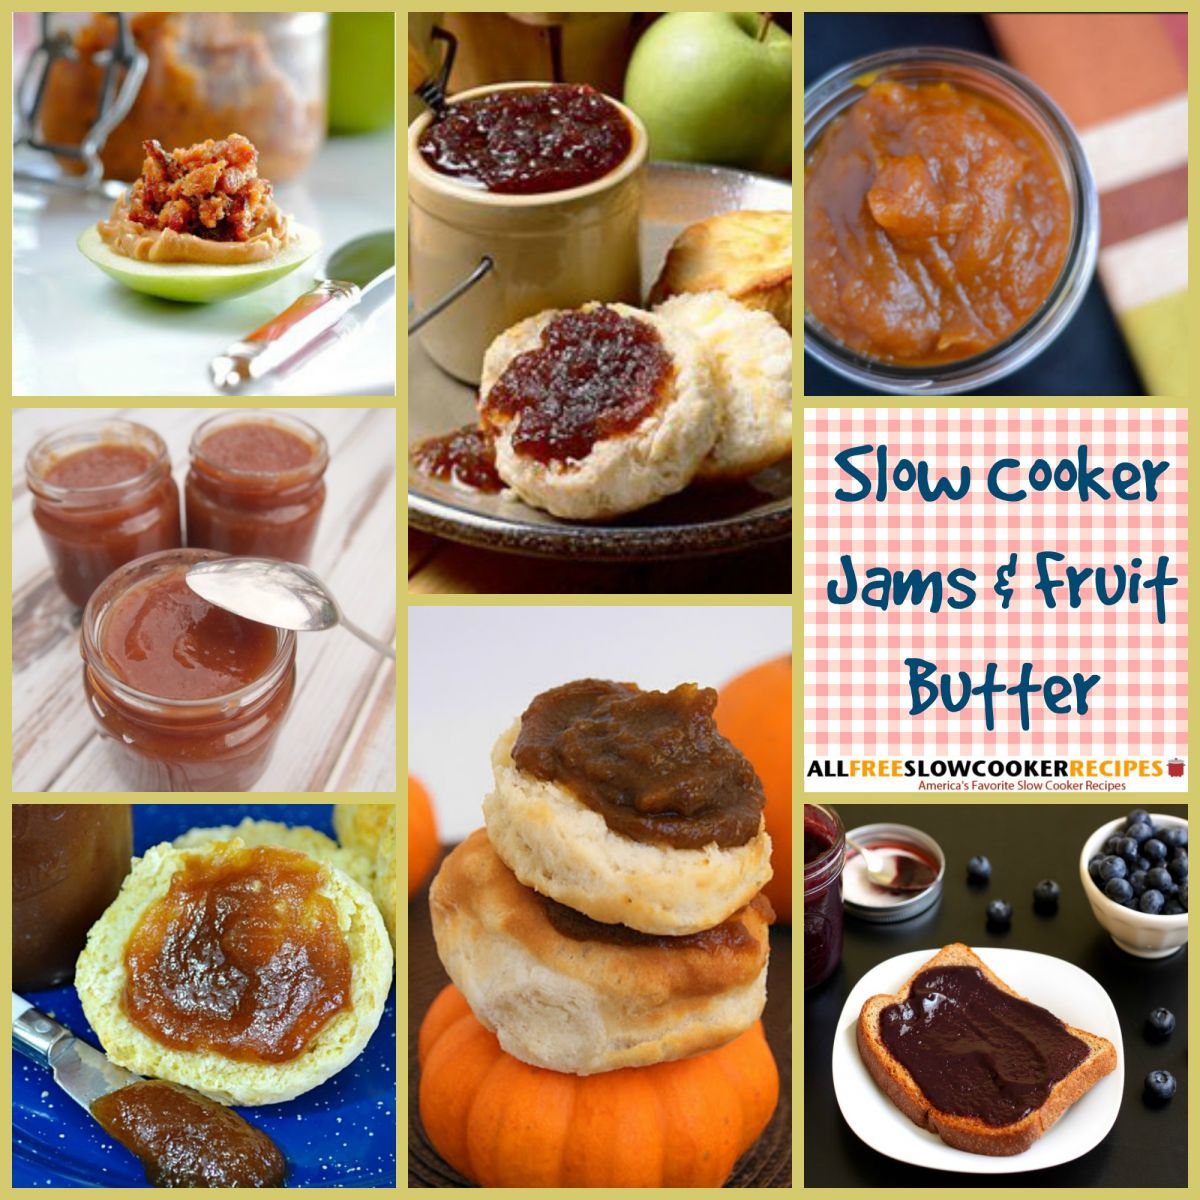 Slow Cooker Jams and Fruit Butter